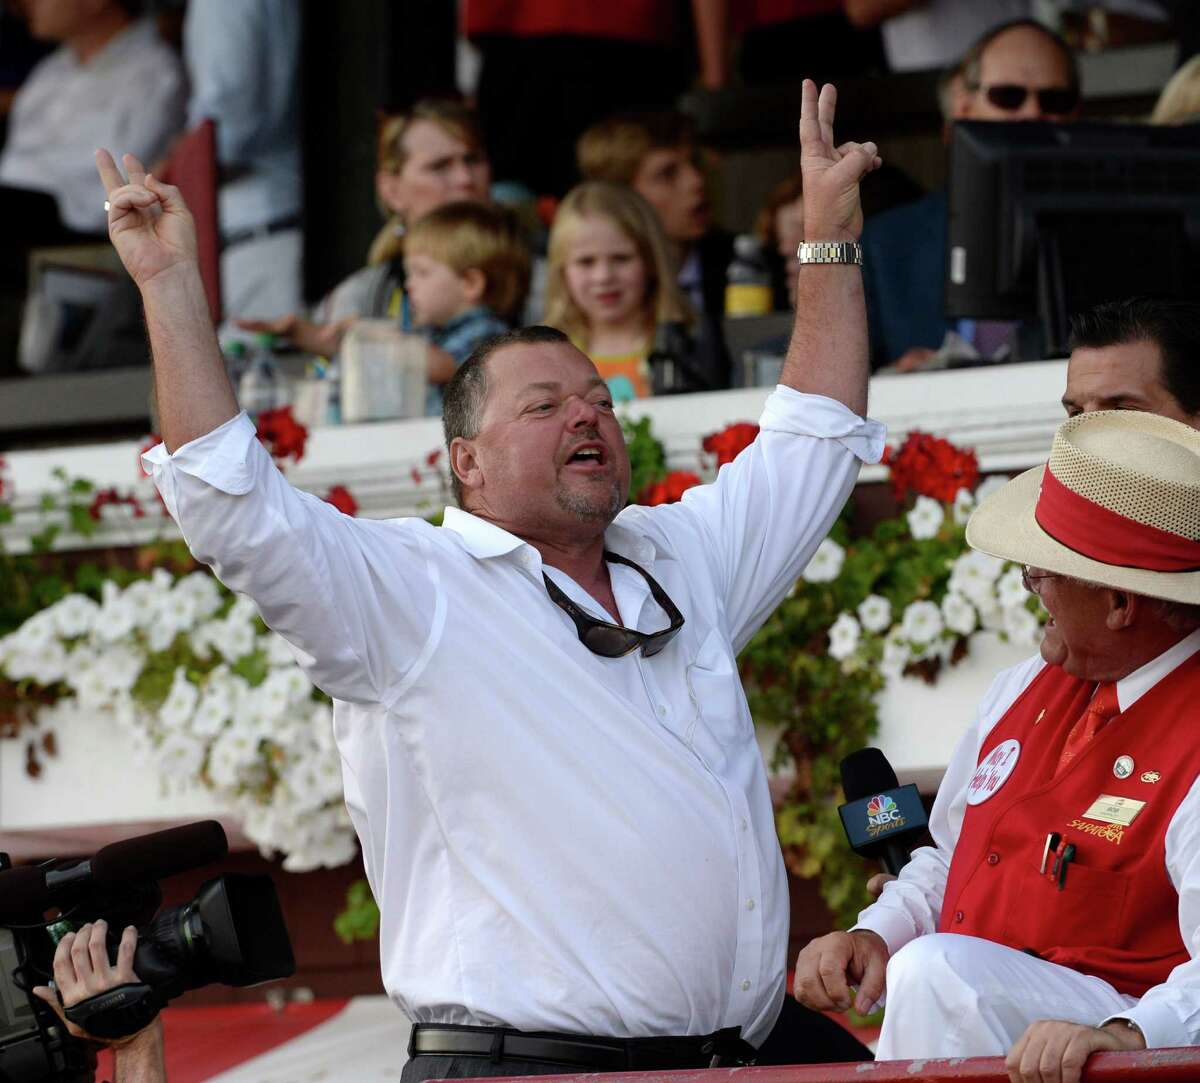 Trainer Eric Guillot is exultant after his charge Moreno won the 87th running of The Whitney Saturday afternoon Aug. 2, 2014 at the Saratoga Race Course in Saratoga Springs, N.Y. (Skip Dickstein/Times Union) ORG XMIT: NYALT